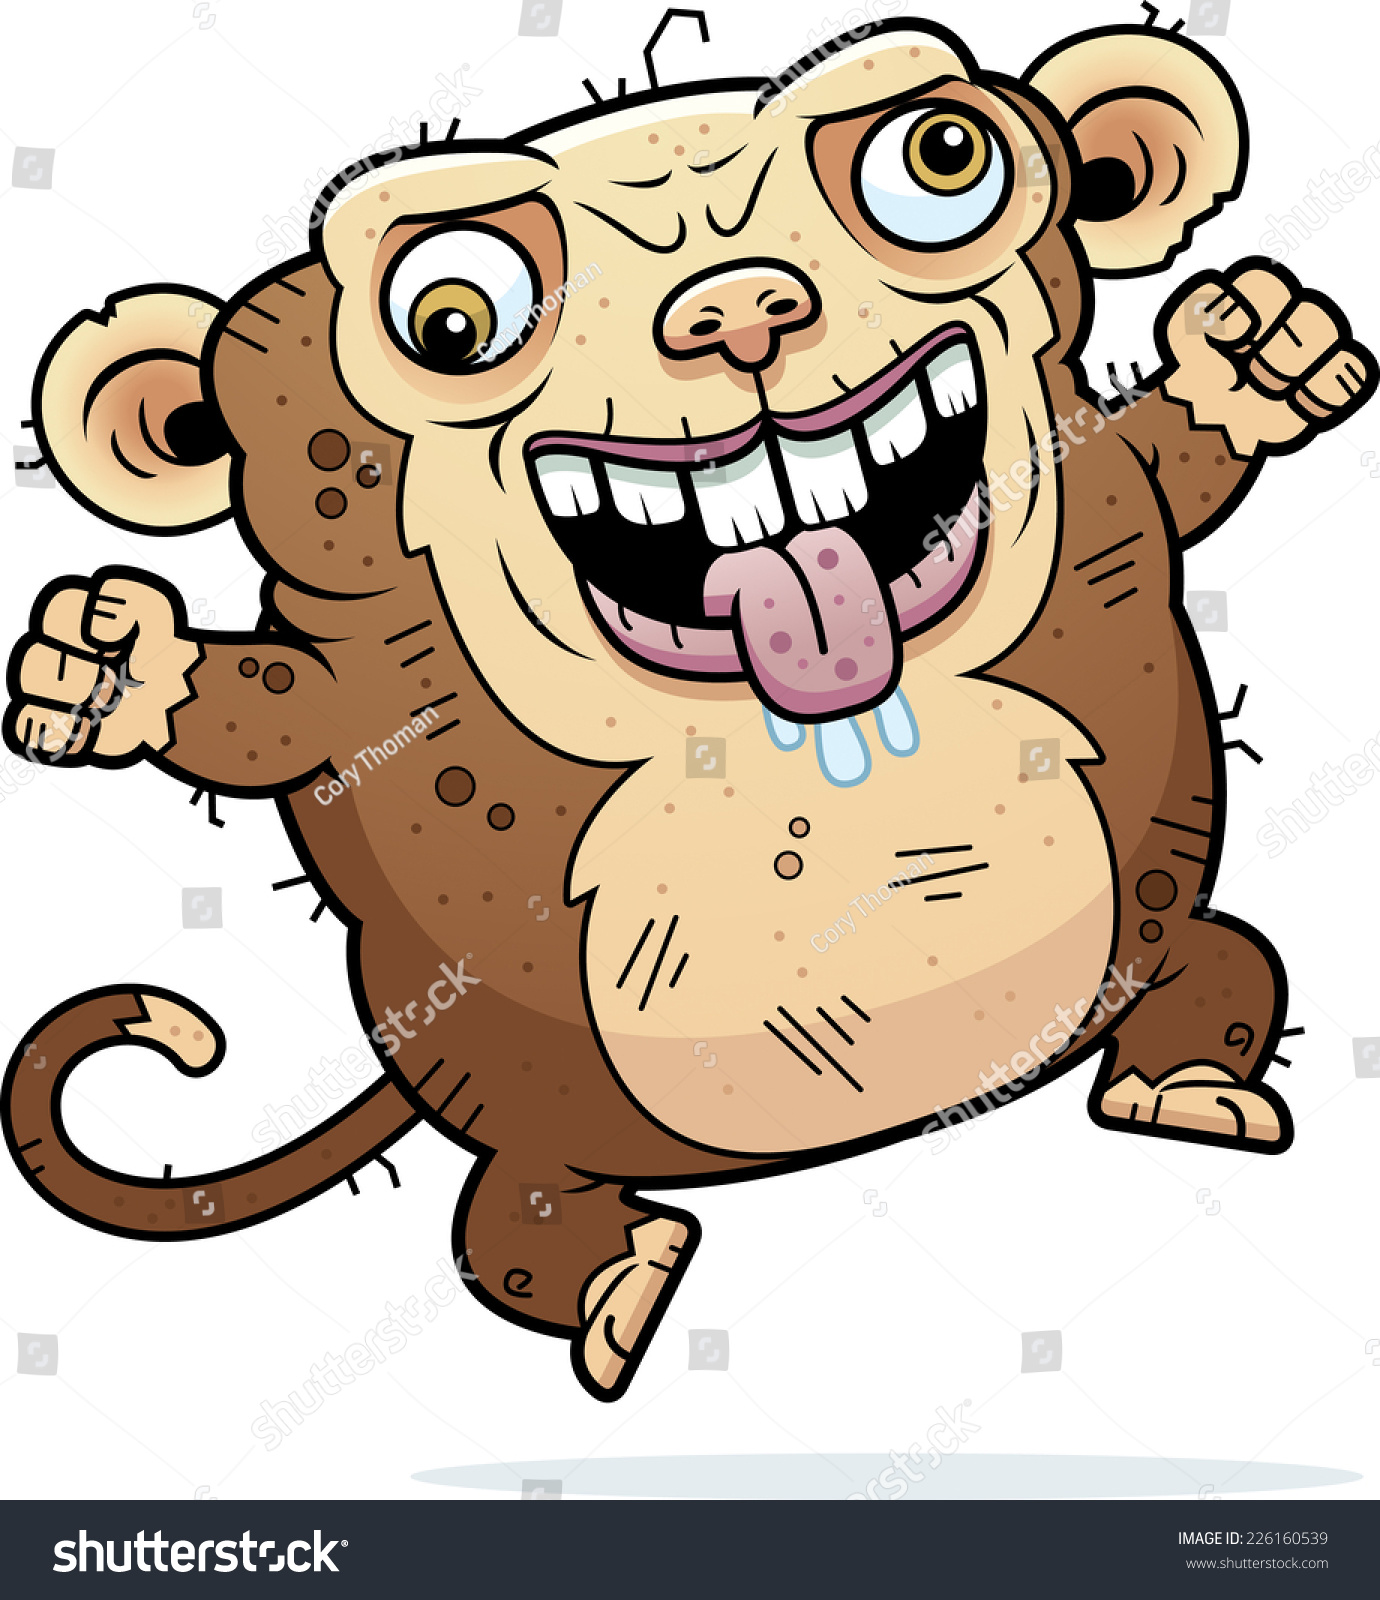 Cartoon Characters Ugly : Crazy monkey clipart imgkid the image kid has it